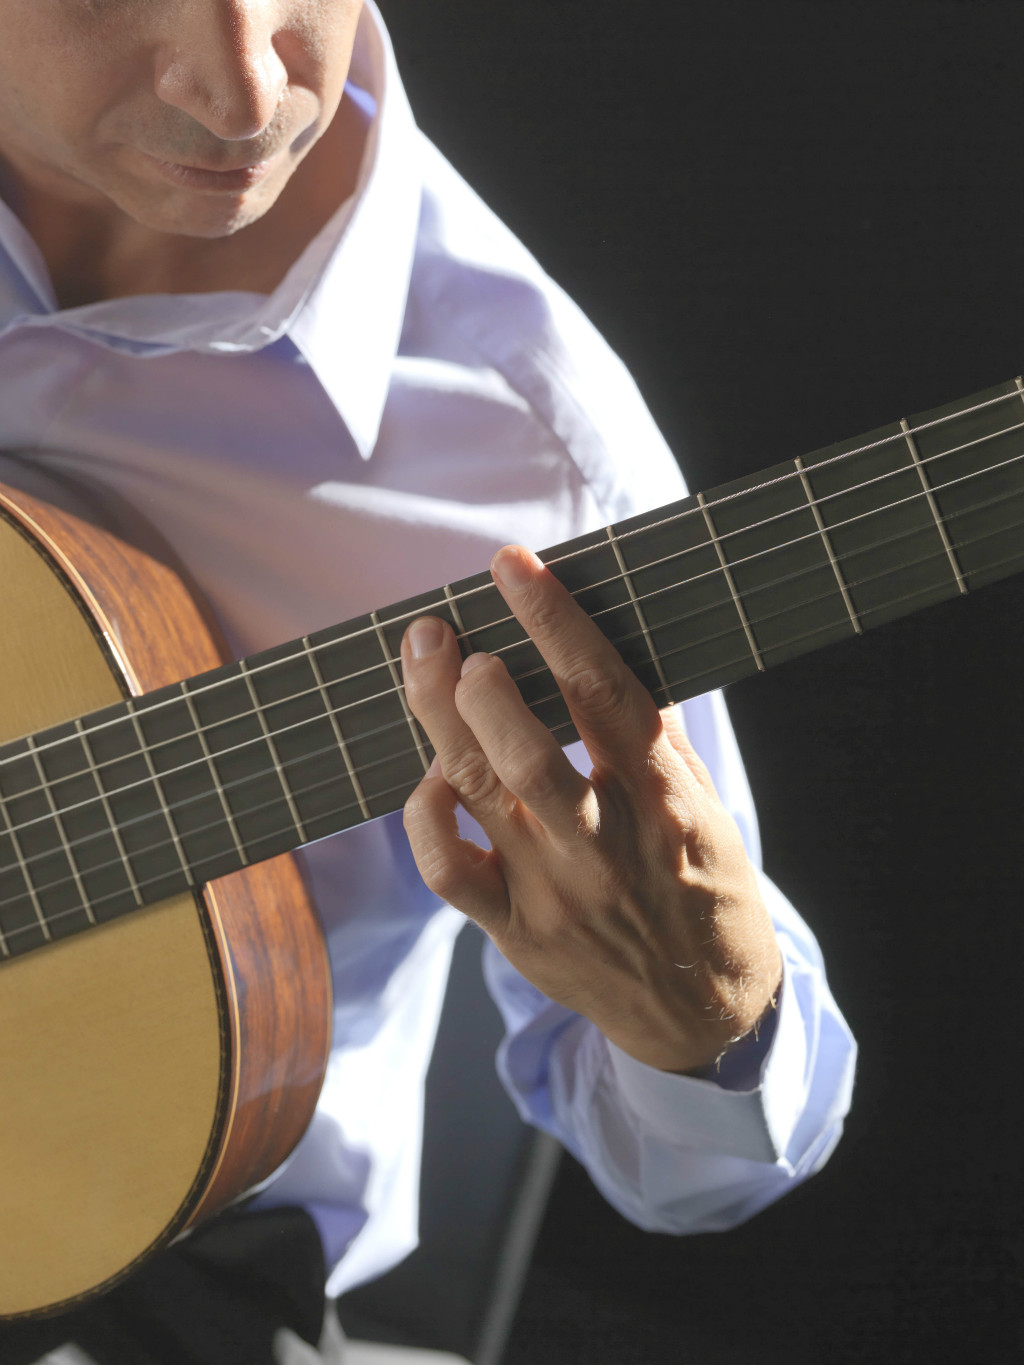 How to get good timbre when playing classical guitar, or any guitar!